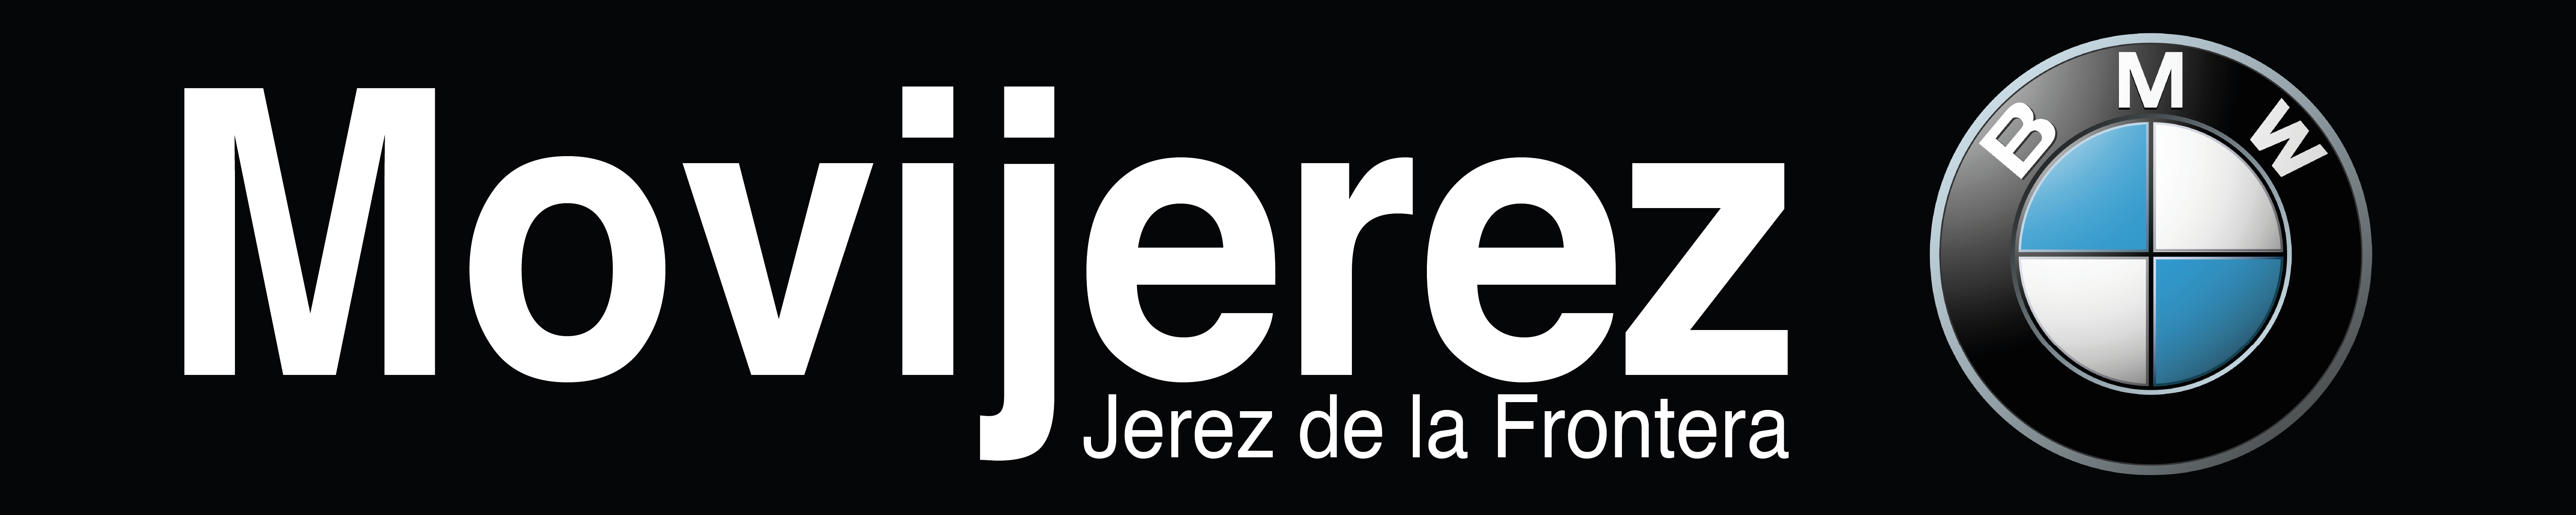 movijerez banner